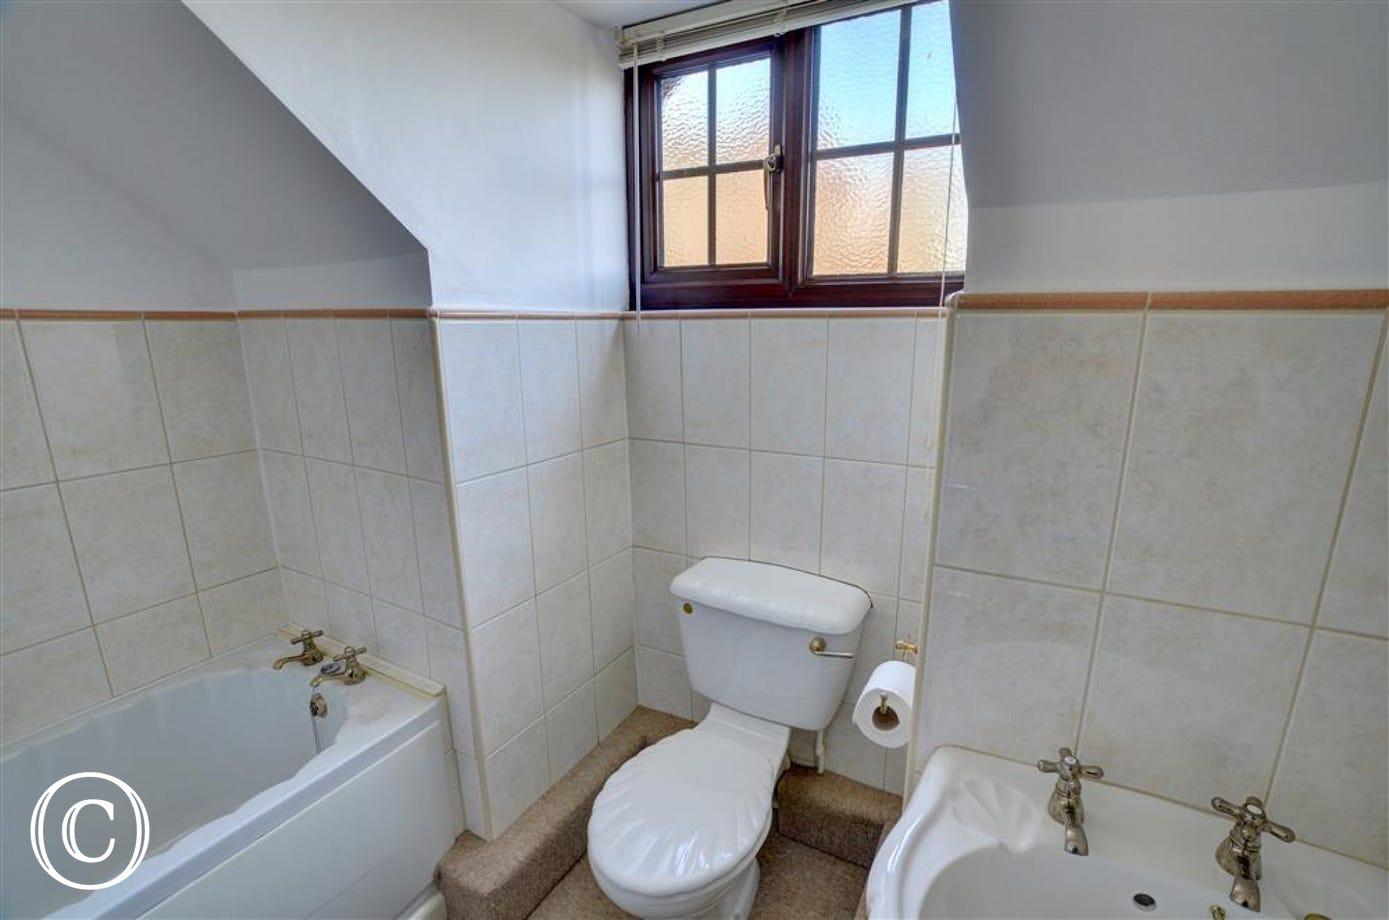 The bathroom has white fittings and is on the first floor